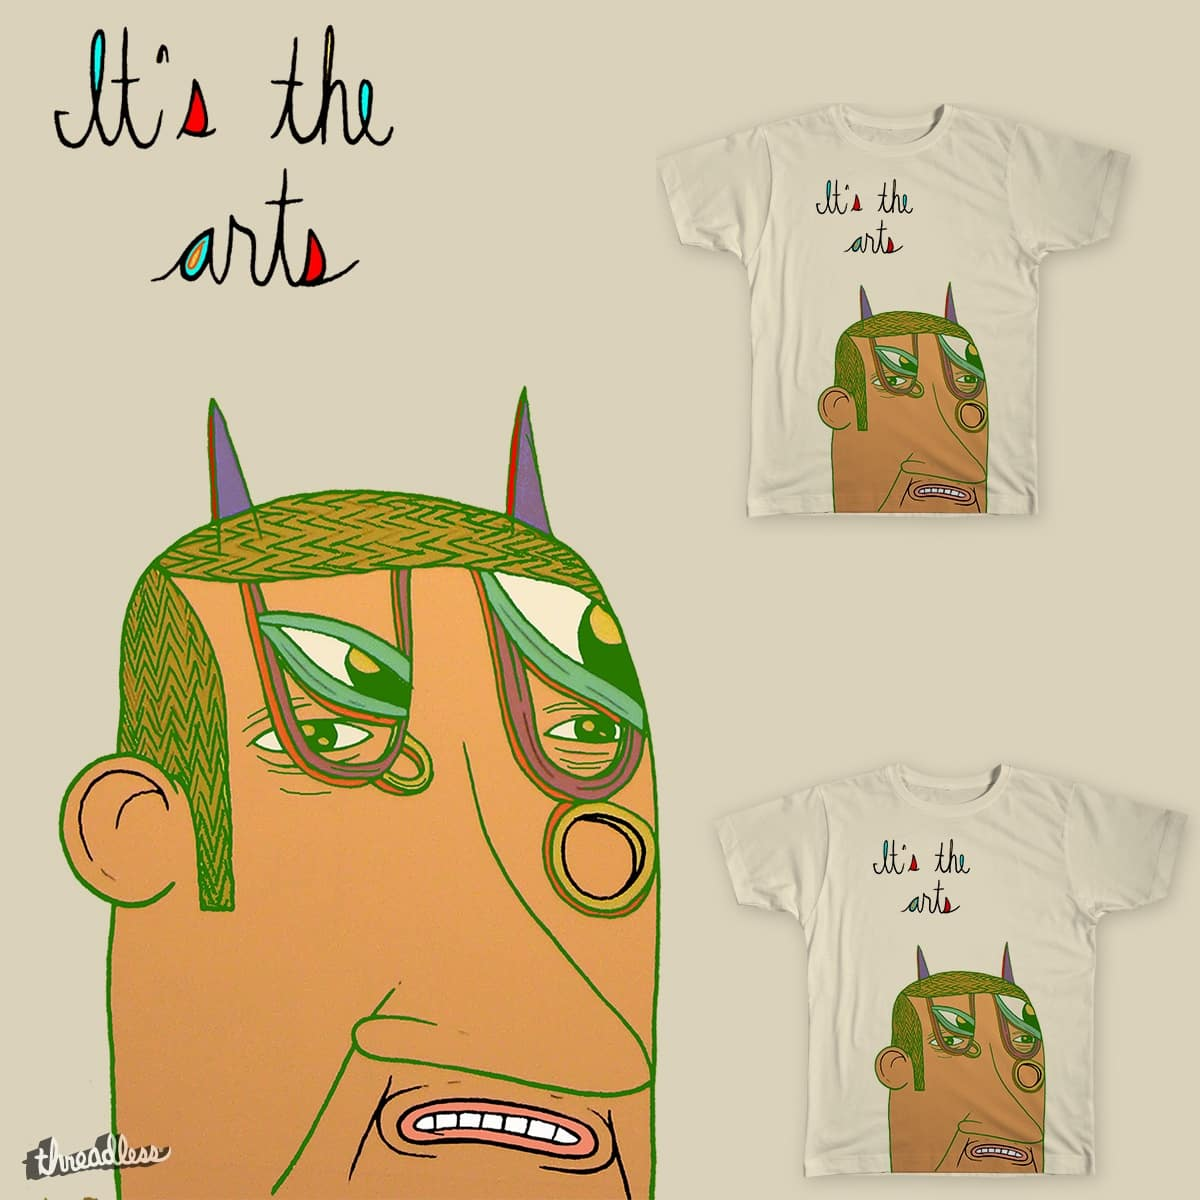 it's the arts by Peter Thompson on Threadless